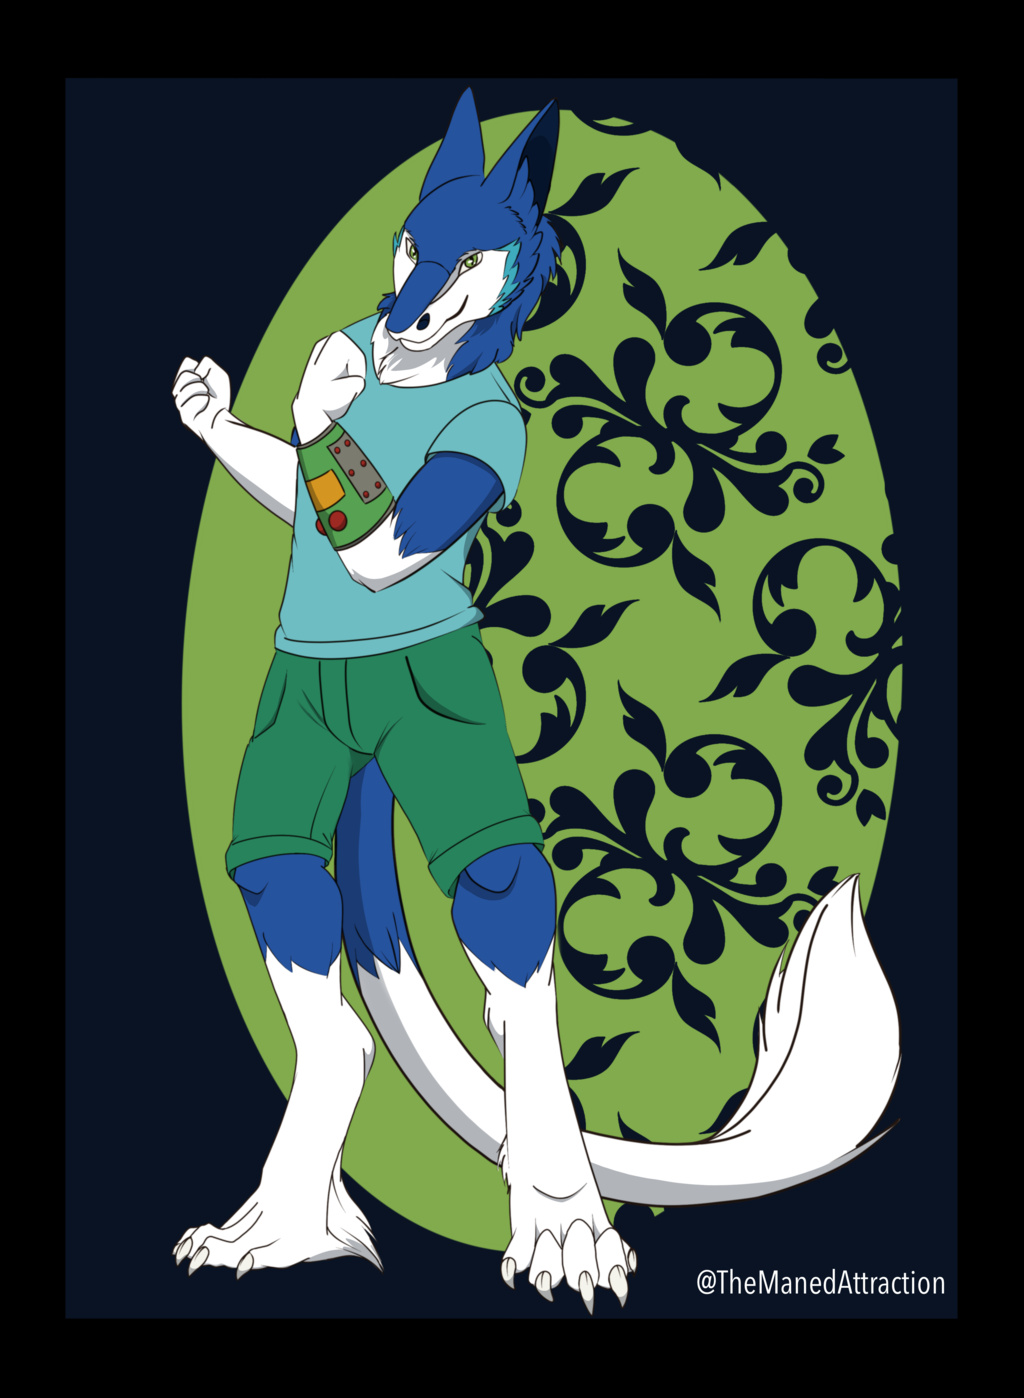 Jaxine - 2 of 13 Character Card